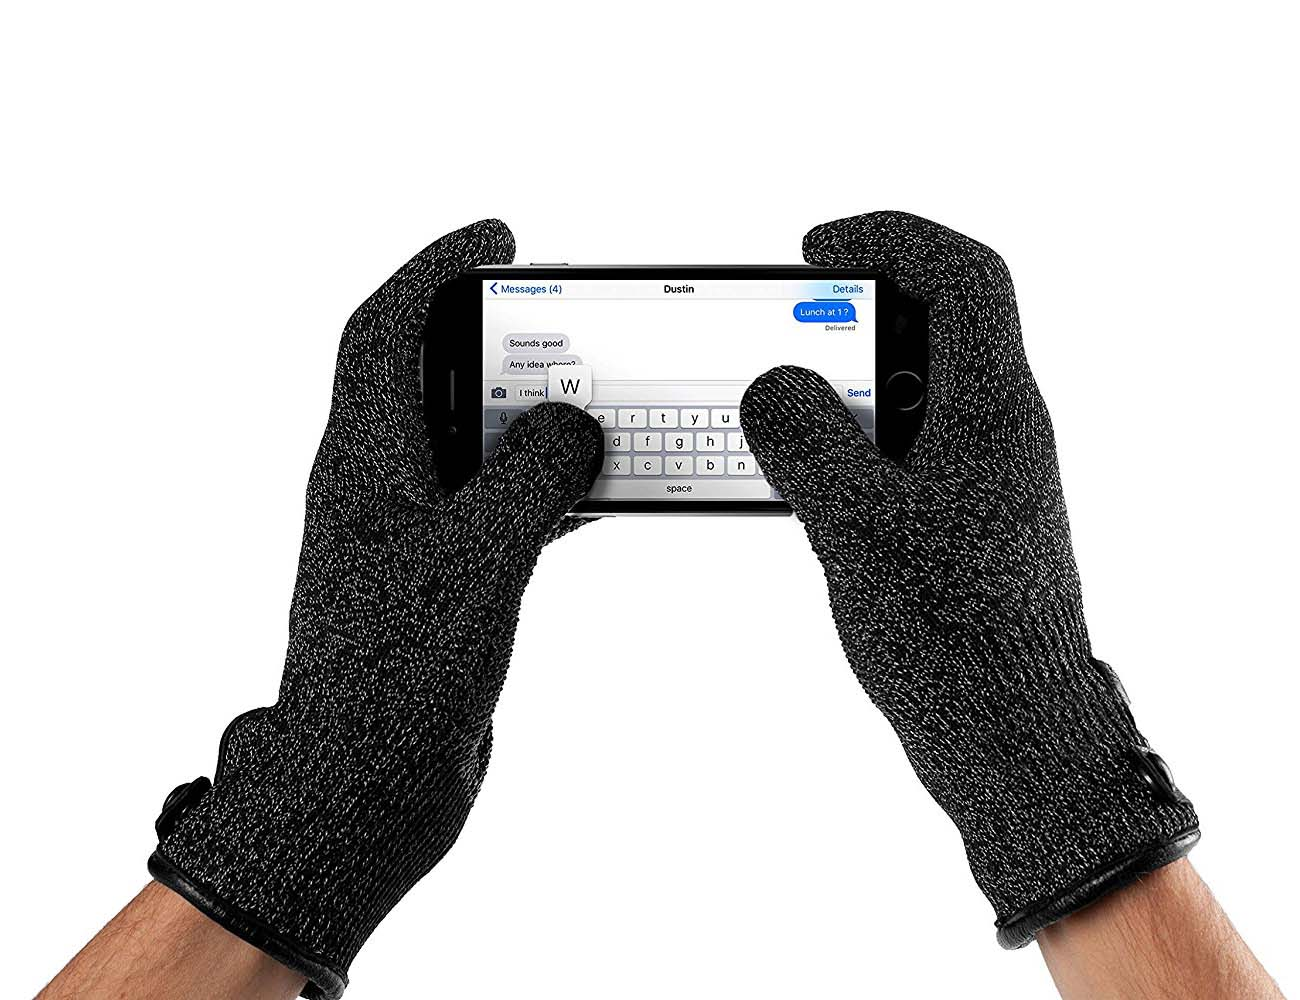 Double Layered Touchscreen Gloves by Mujjo